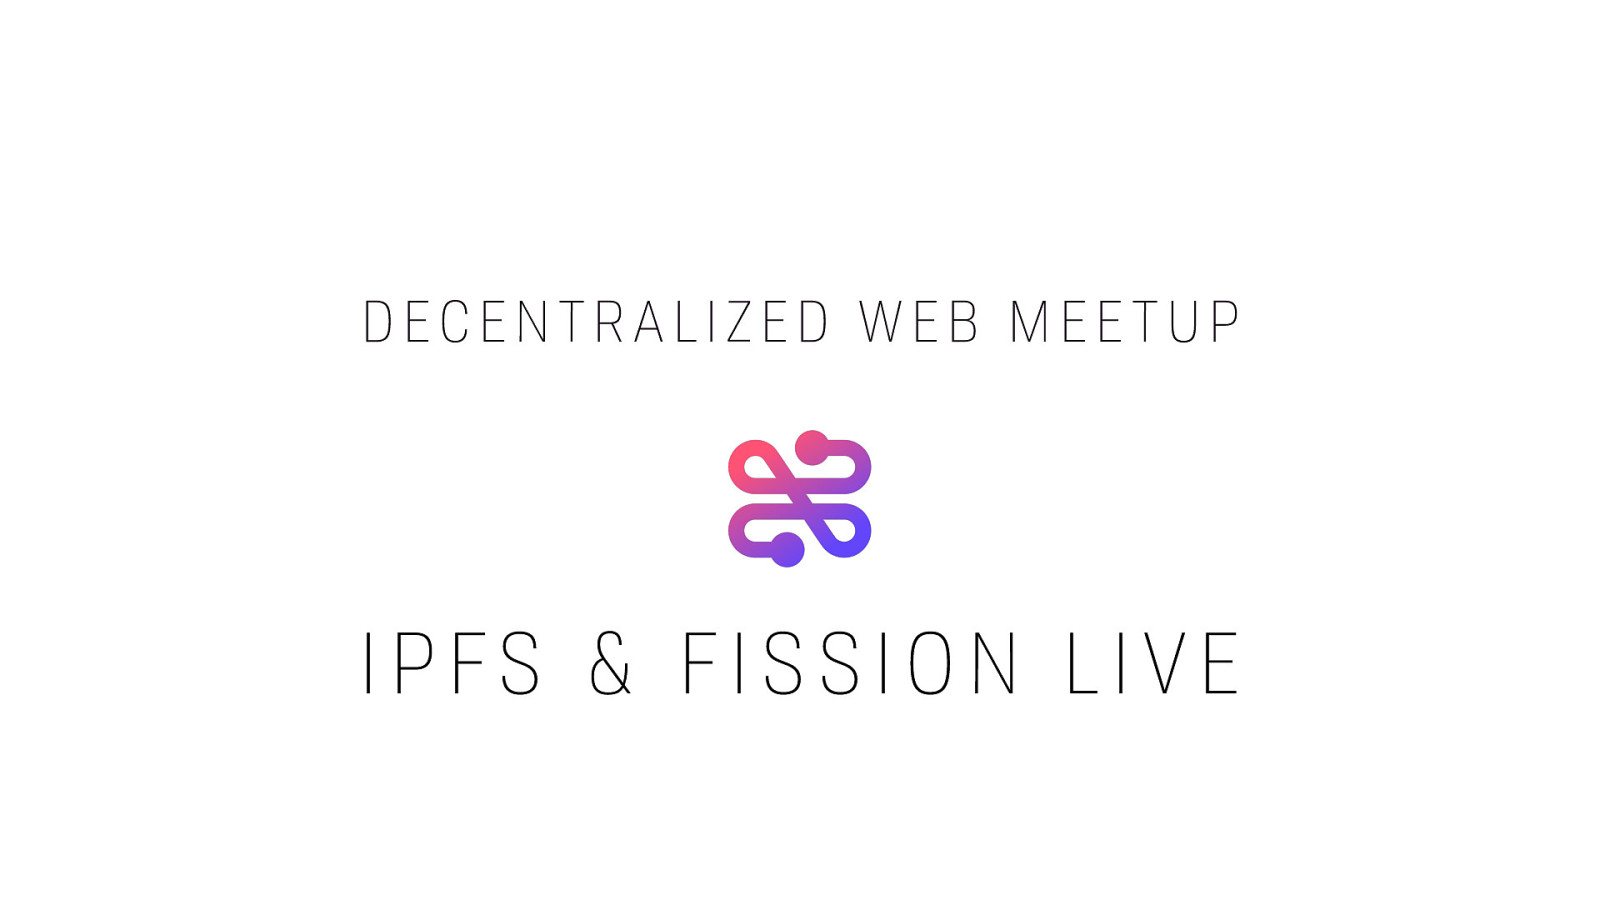 IPFS, DIDs, and Fission